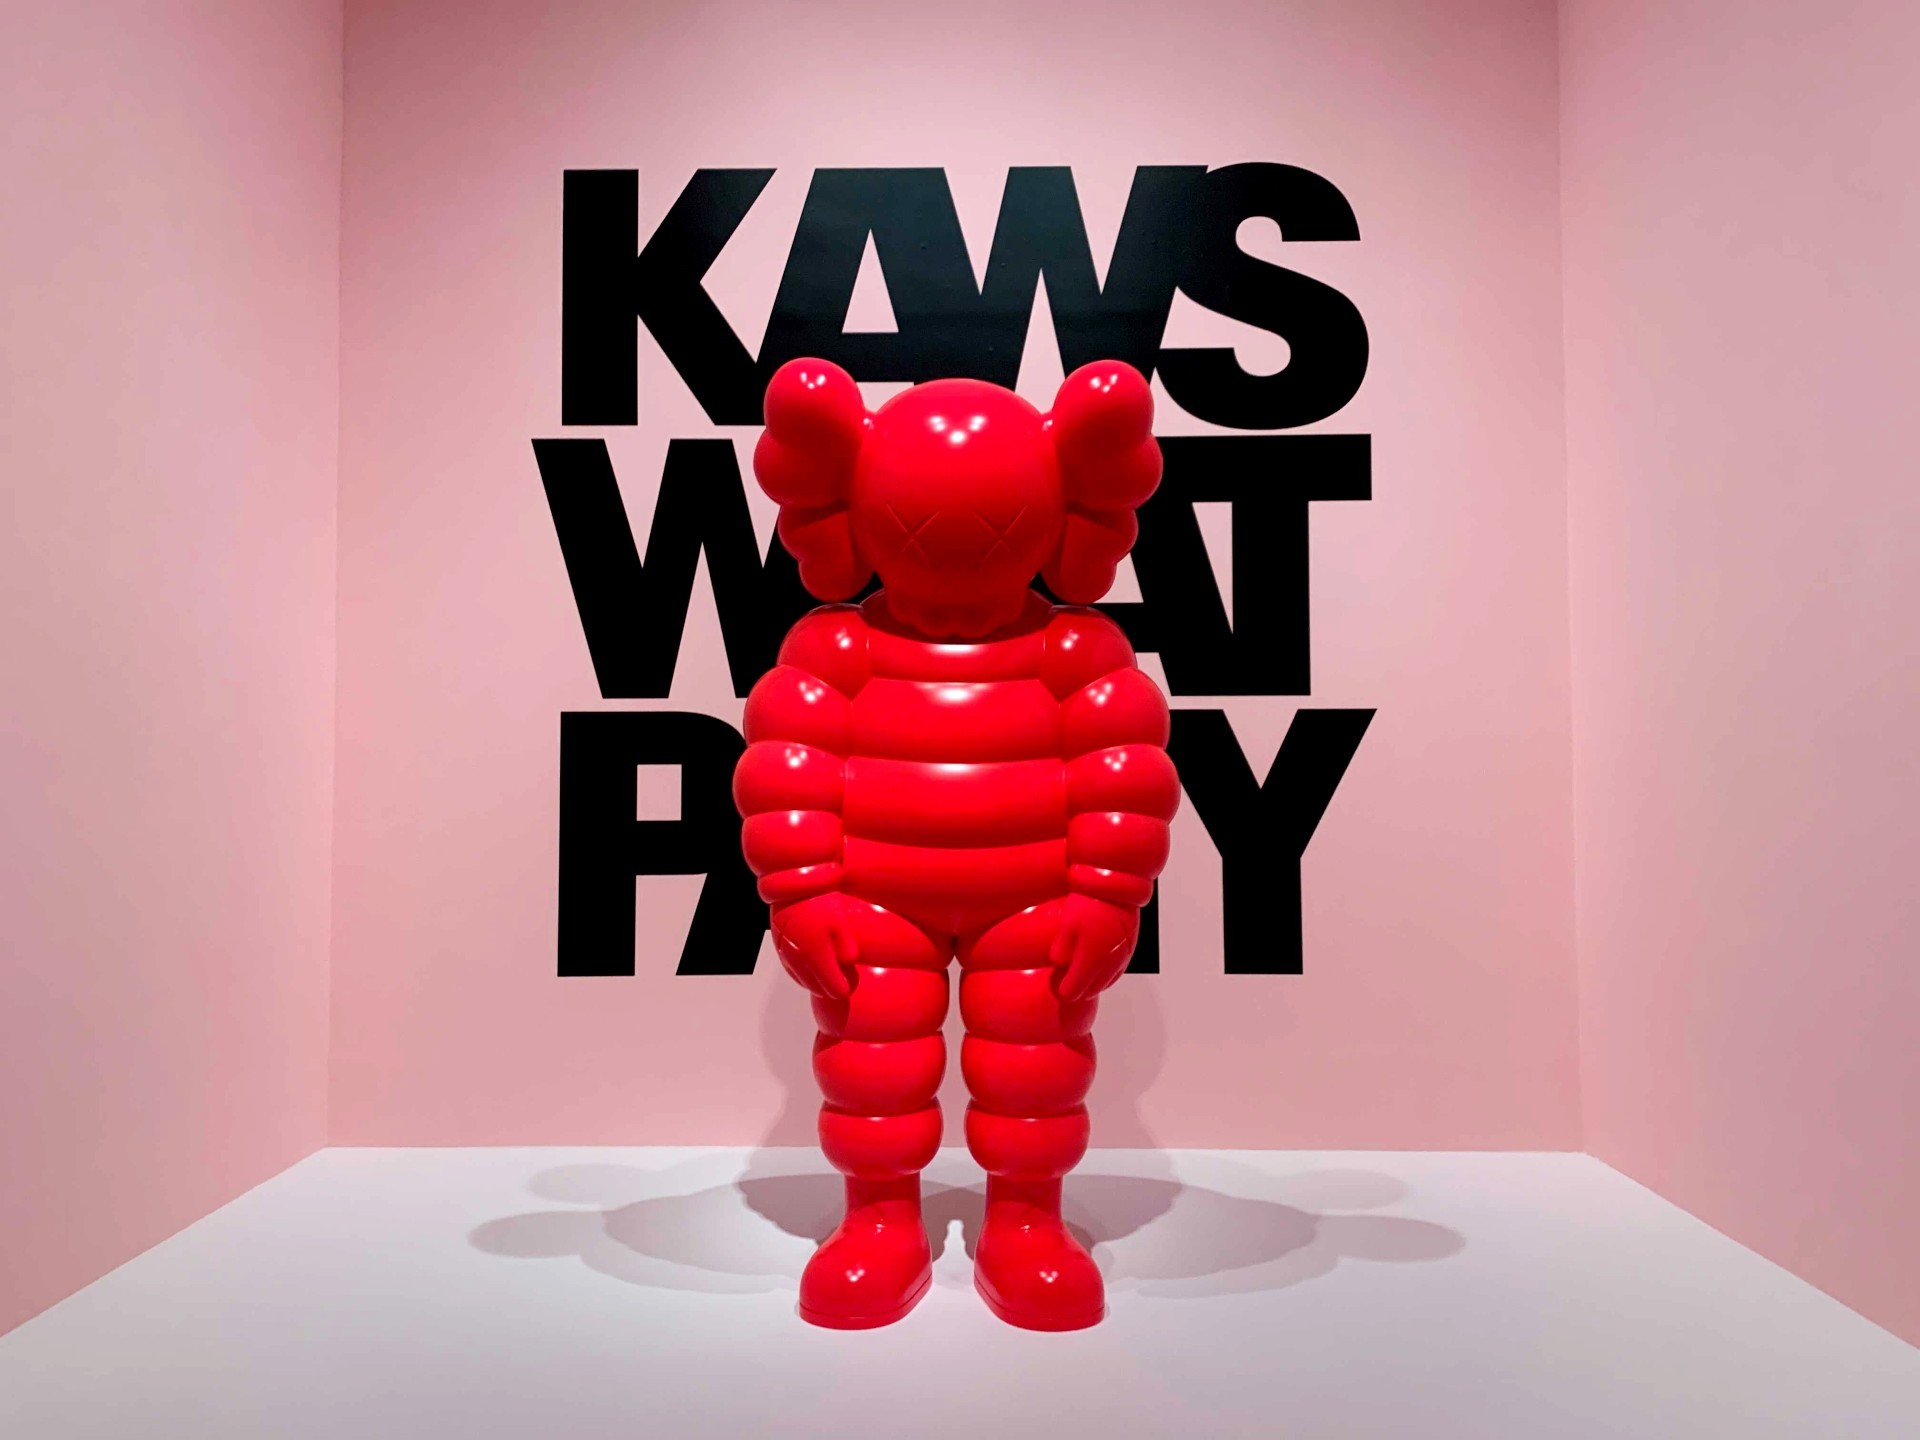 KAWS What Party Brooklyn Museum